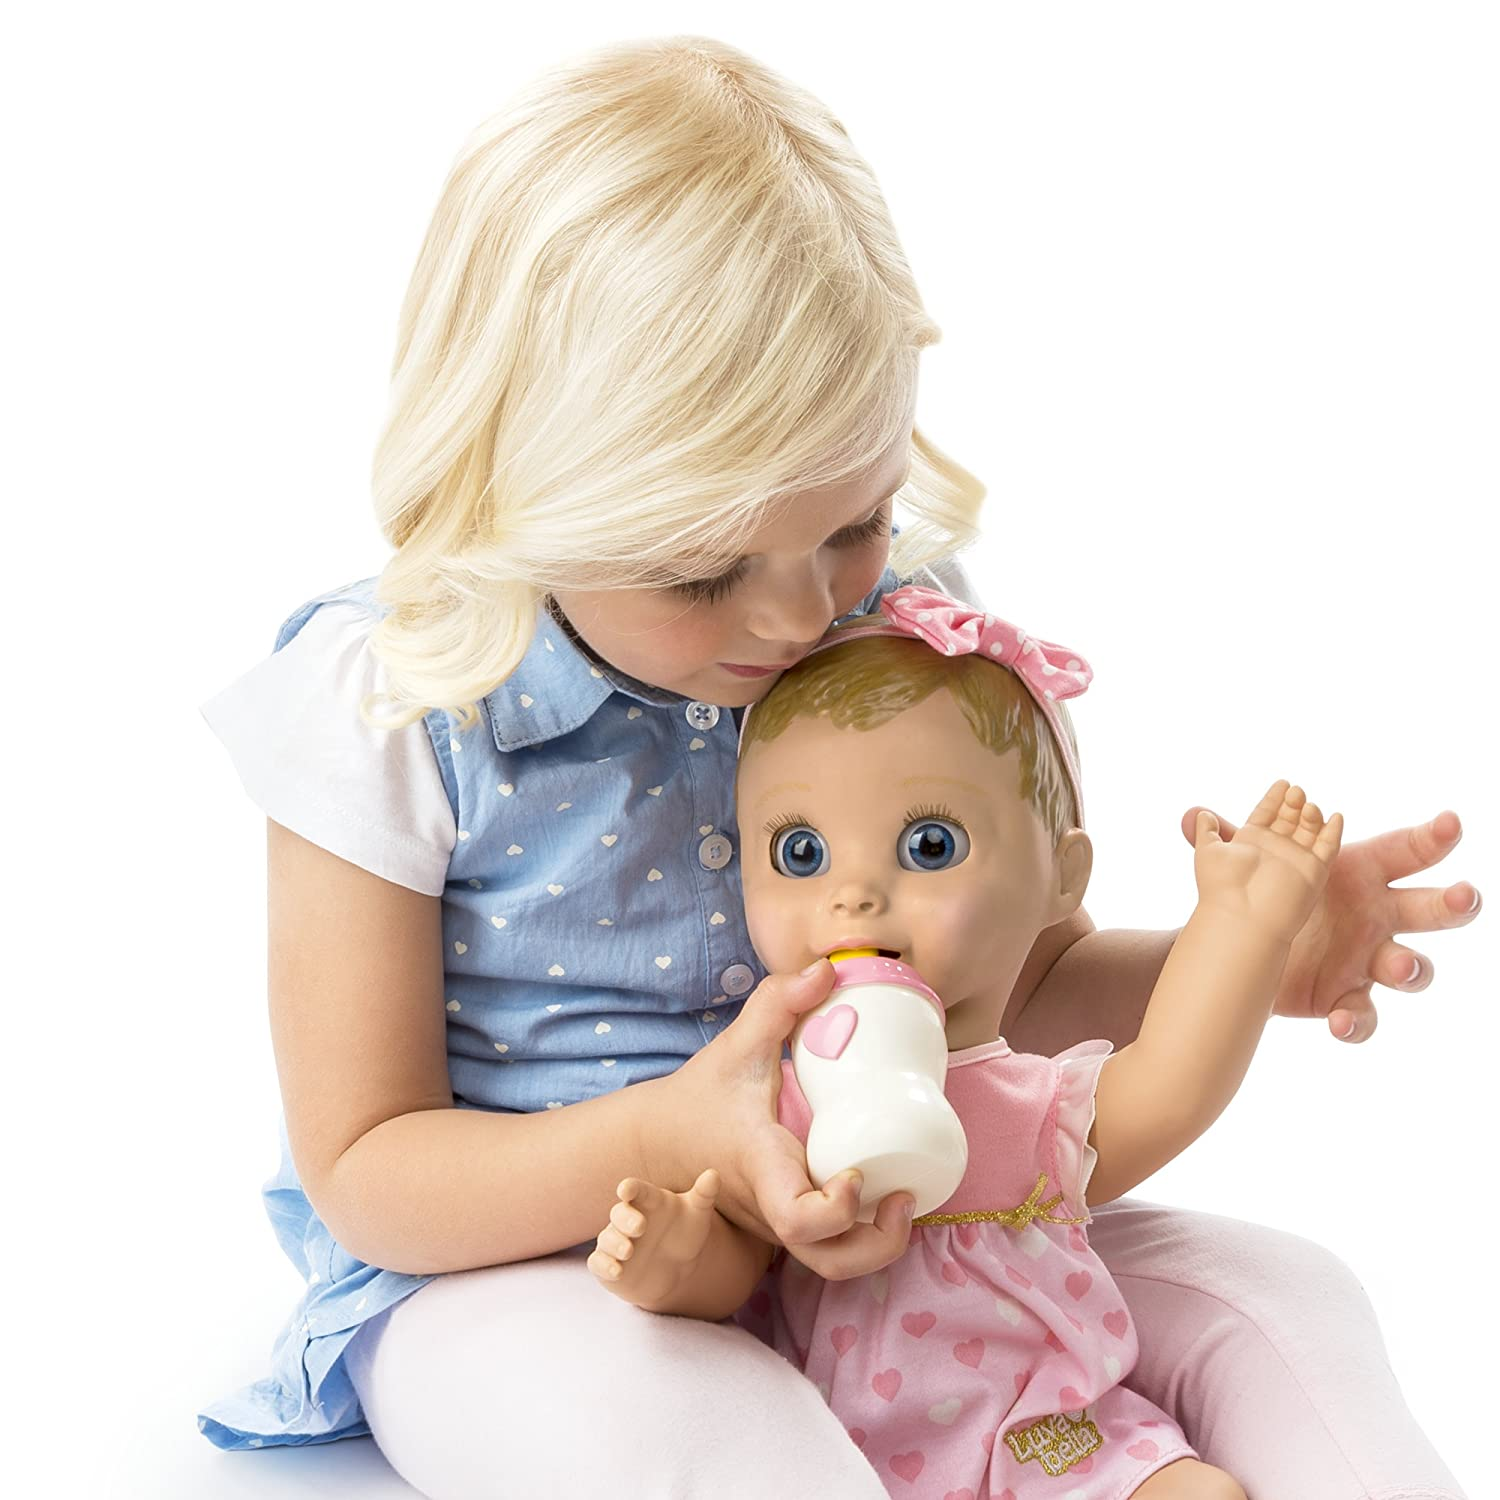 Spinmaster Luvabella Toy - Blonde Hair Doll - Responsive Baby Doll Toy